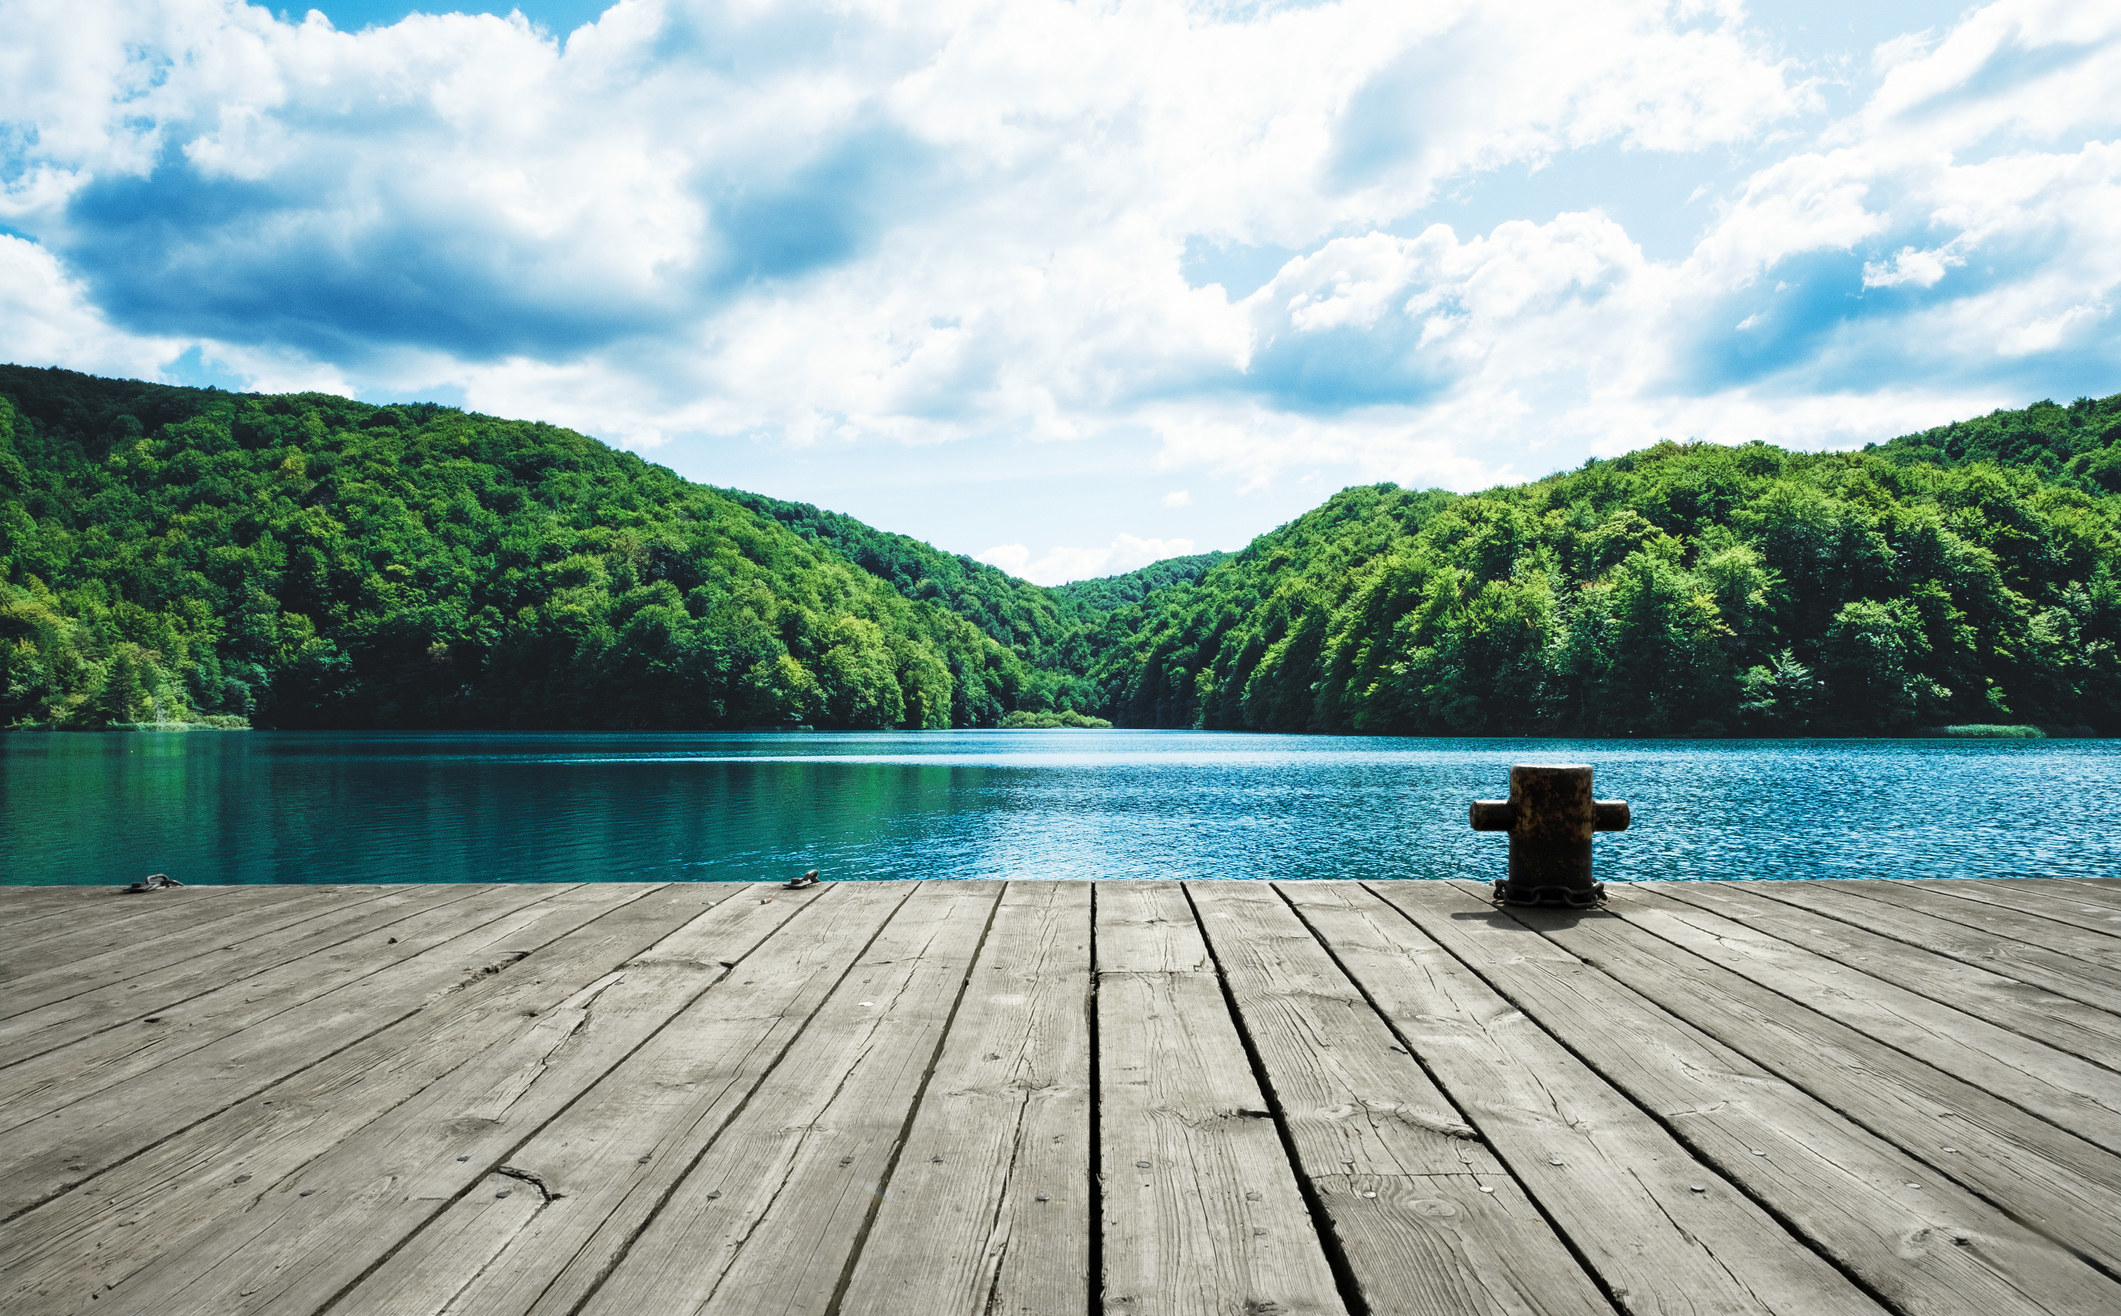 A deck and a lake in the distance.